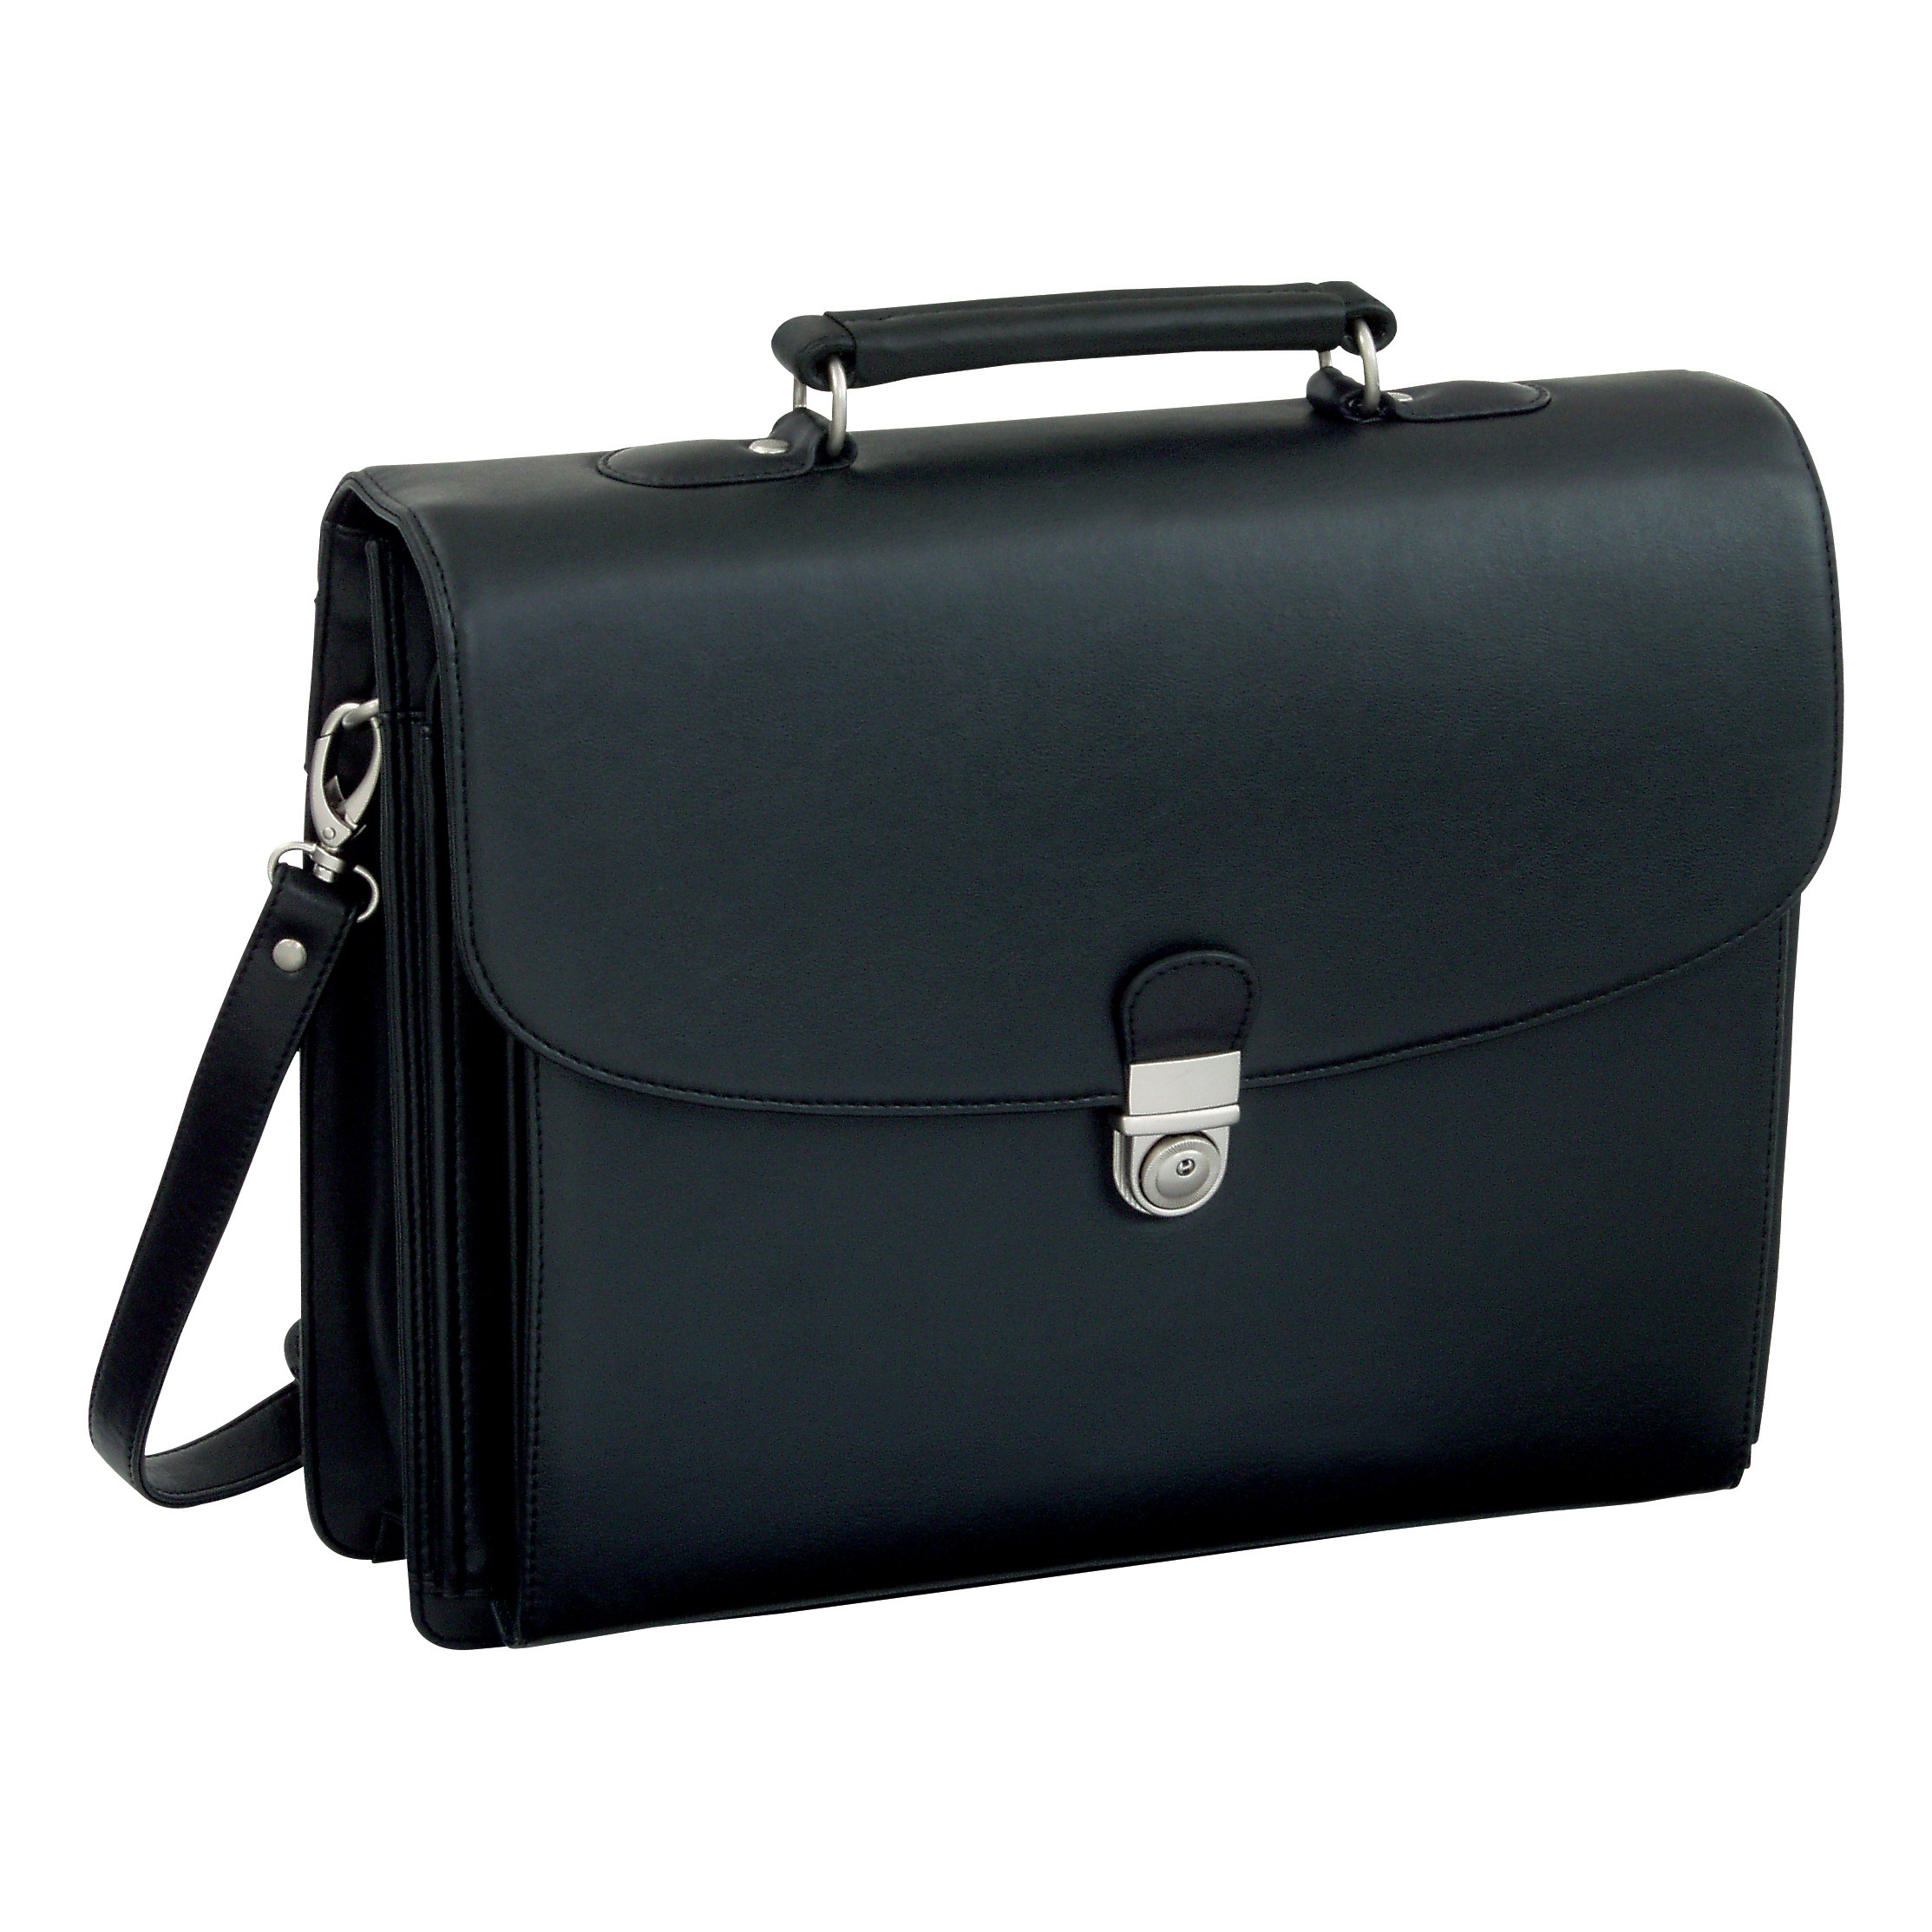 Briefcases & Luggage Alassio Forte Briefcase with Shoulder Strap 5 Document Sections Leather-look Black Ref 92011